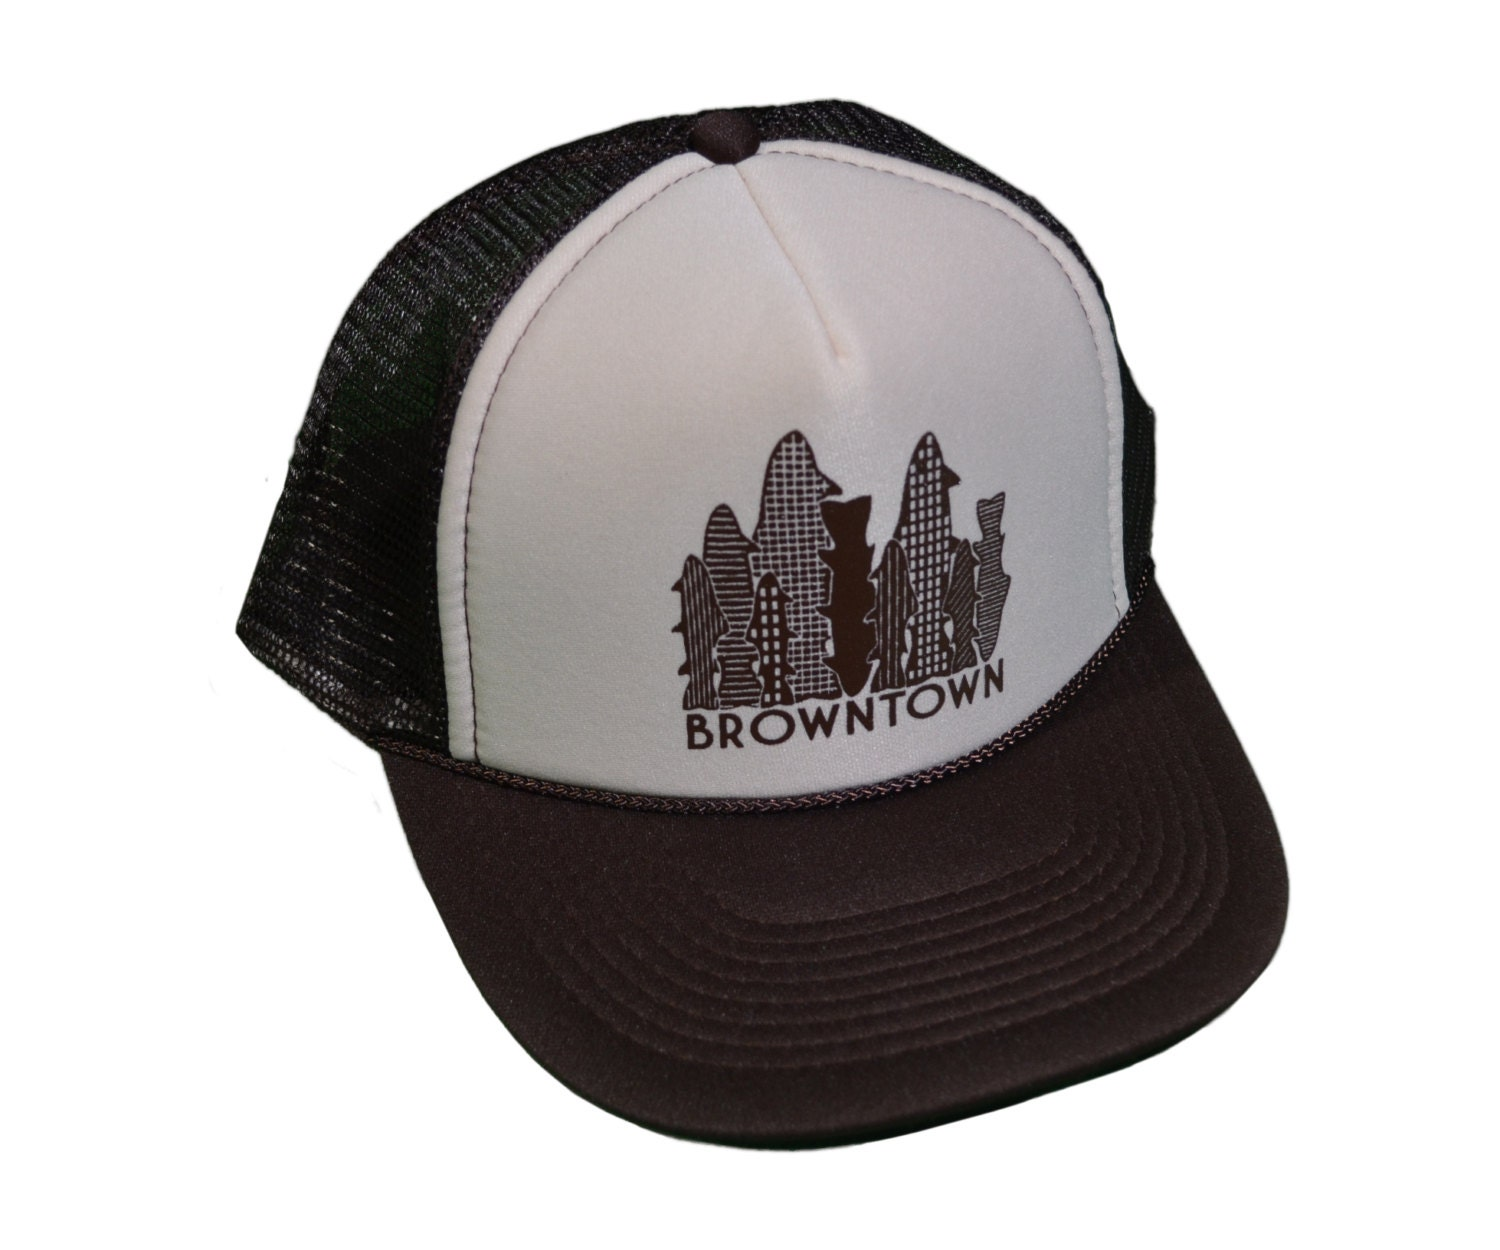 Browntown fly fishing trucker hat for Fishing trucker hats